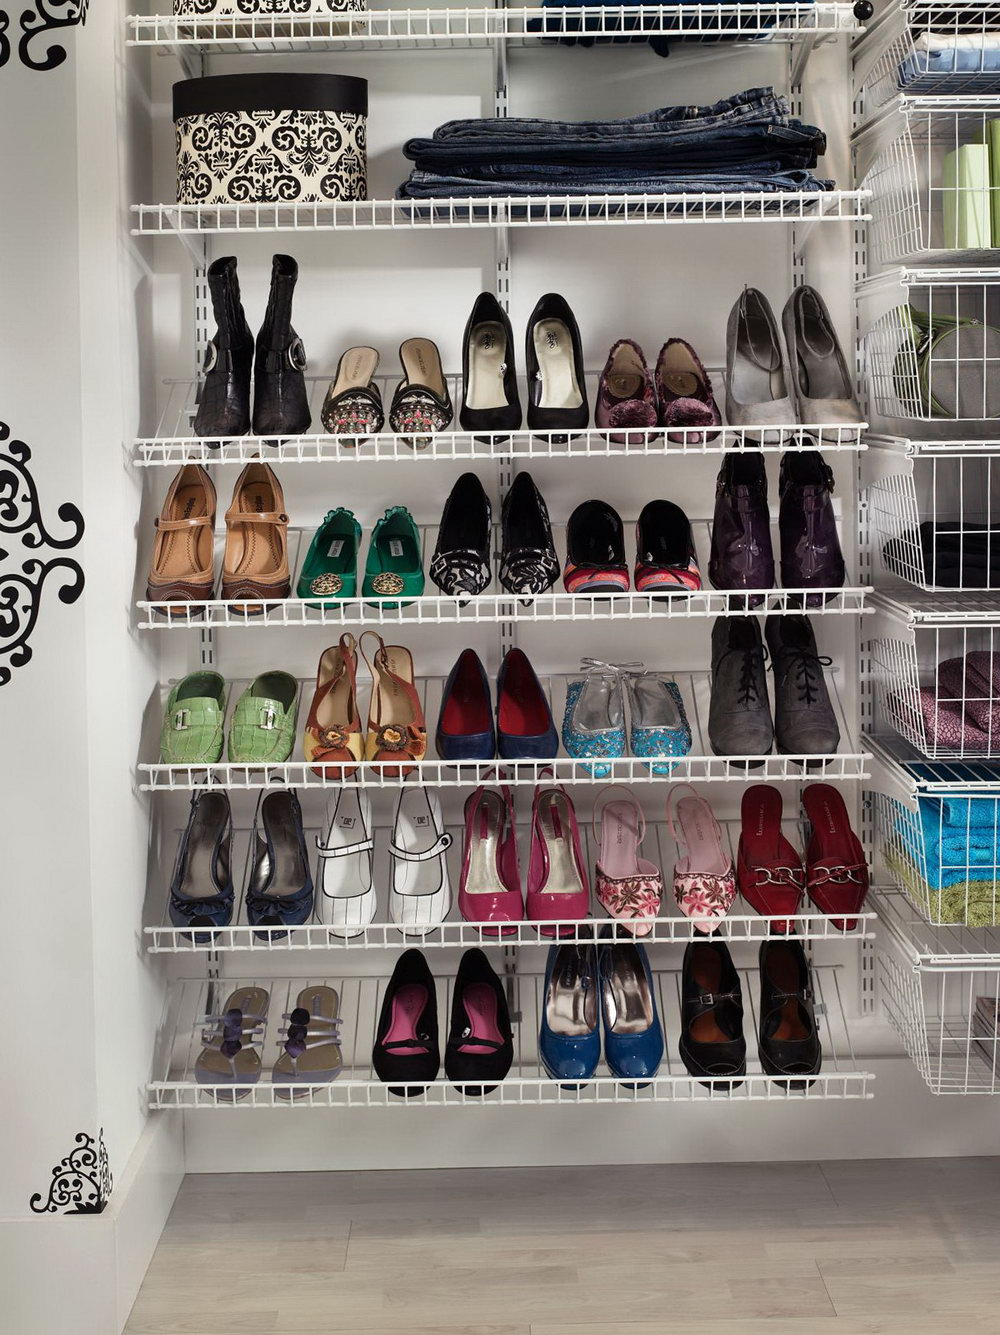 Closet Storage Ideas Shoescloset Storage Ideas Shoescloset Storage Ideas Shoes